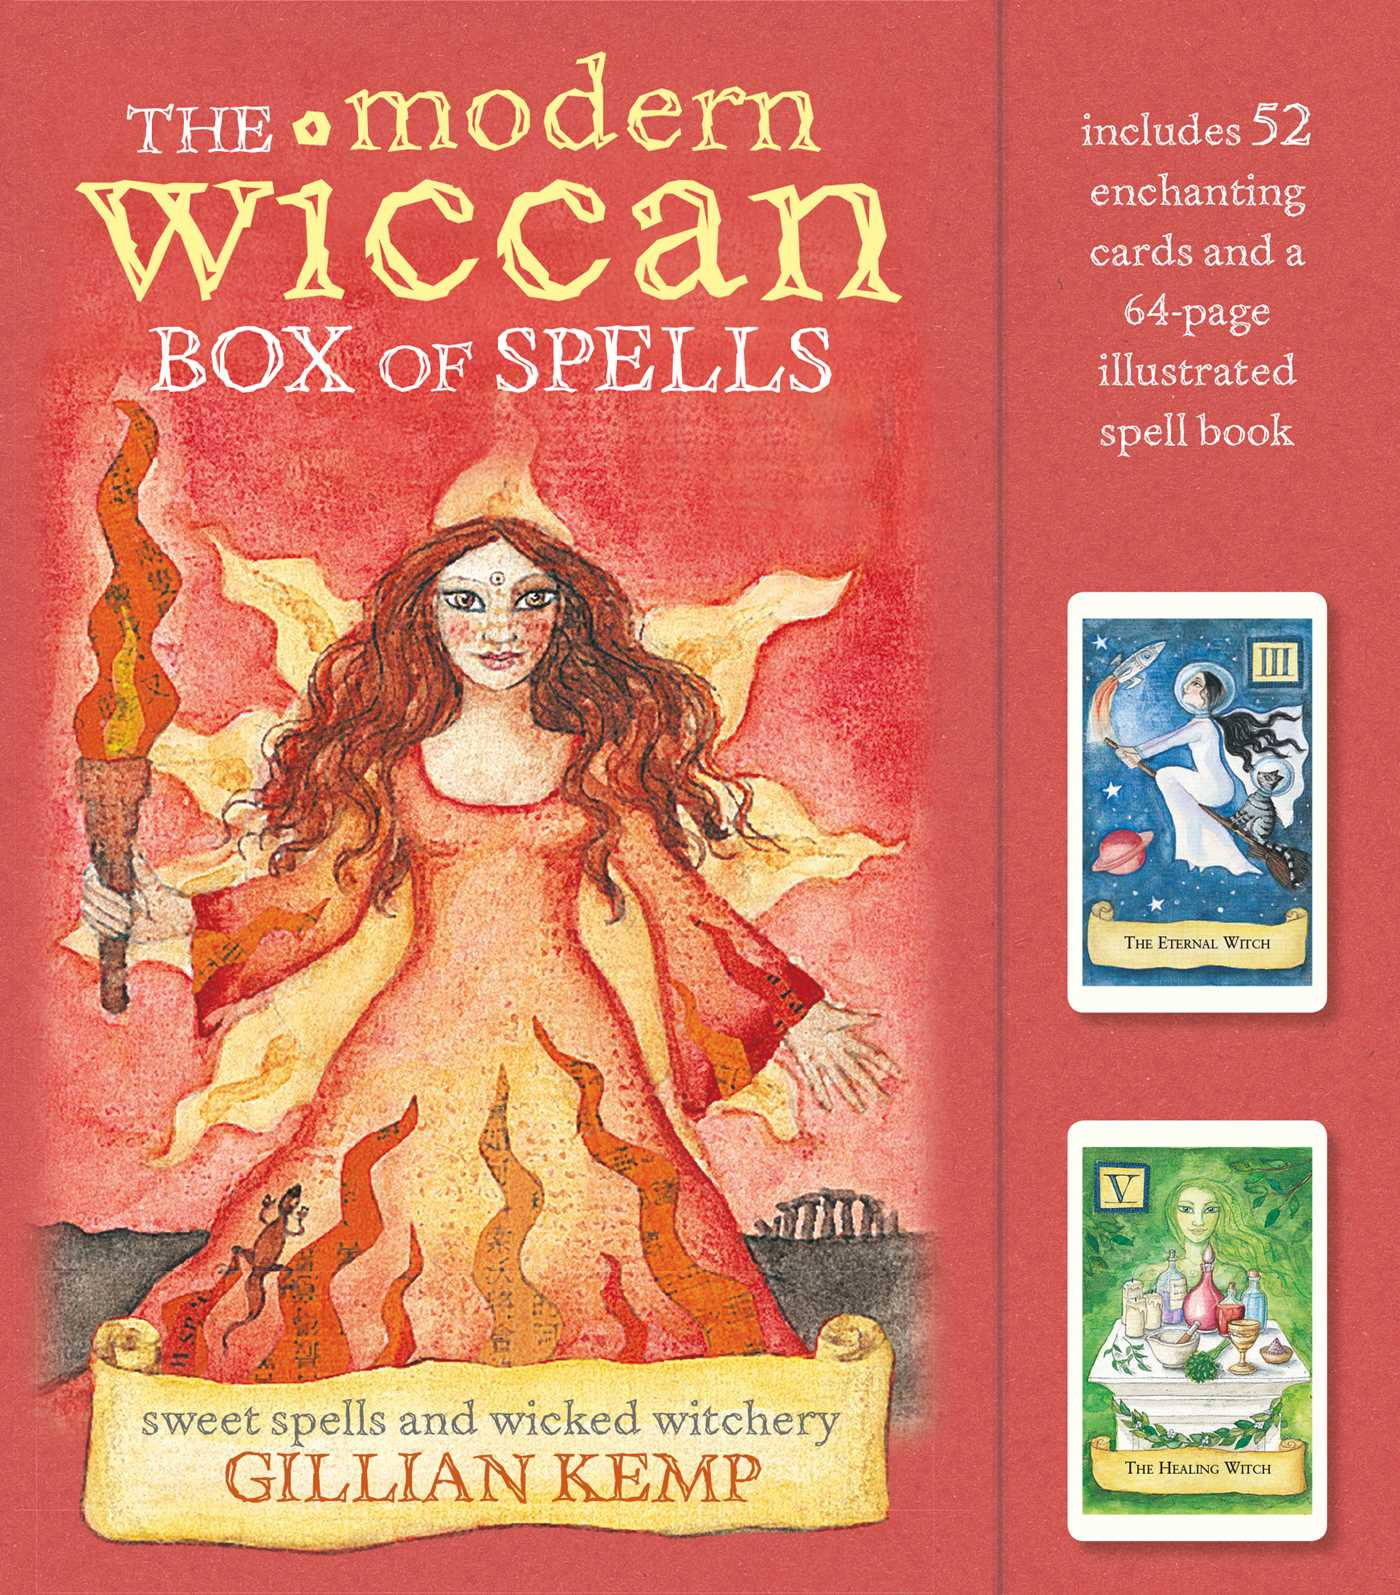 The modern wiccan box of spells 9781782496601 hr